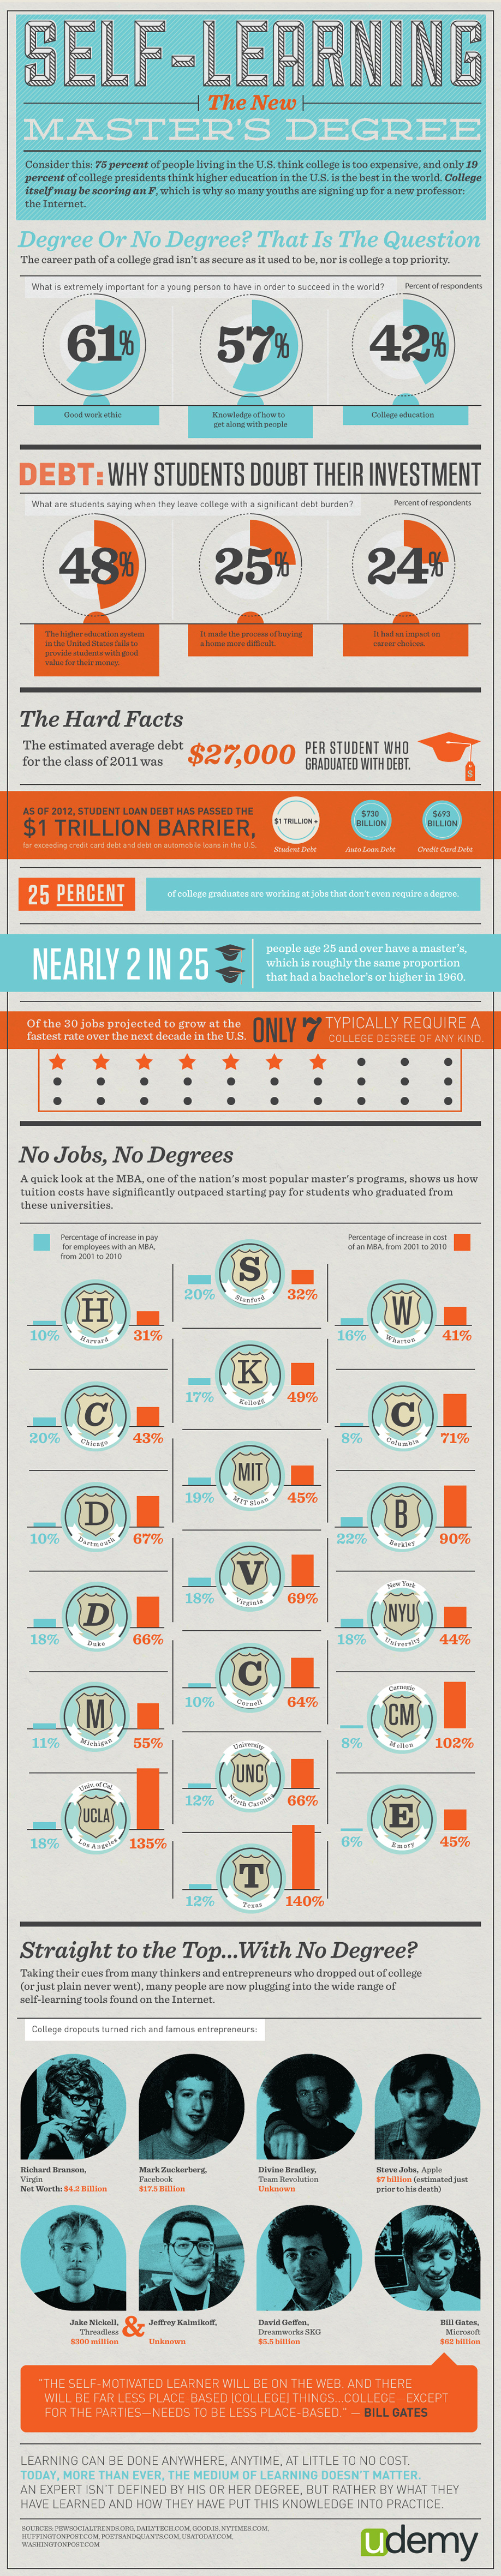 Infographic: Self-Learning: The New Master's Degree